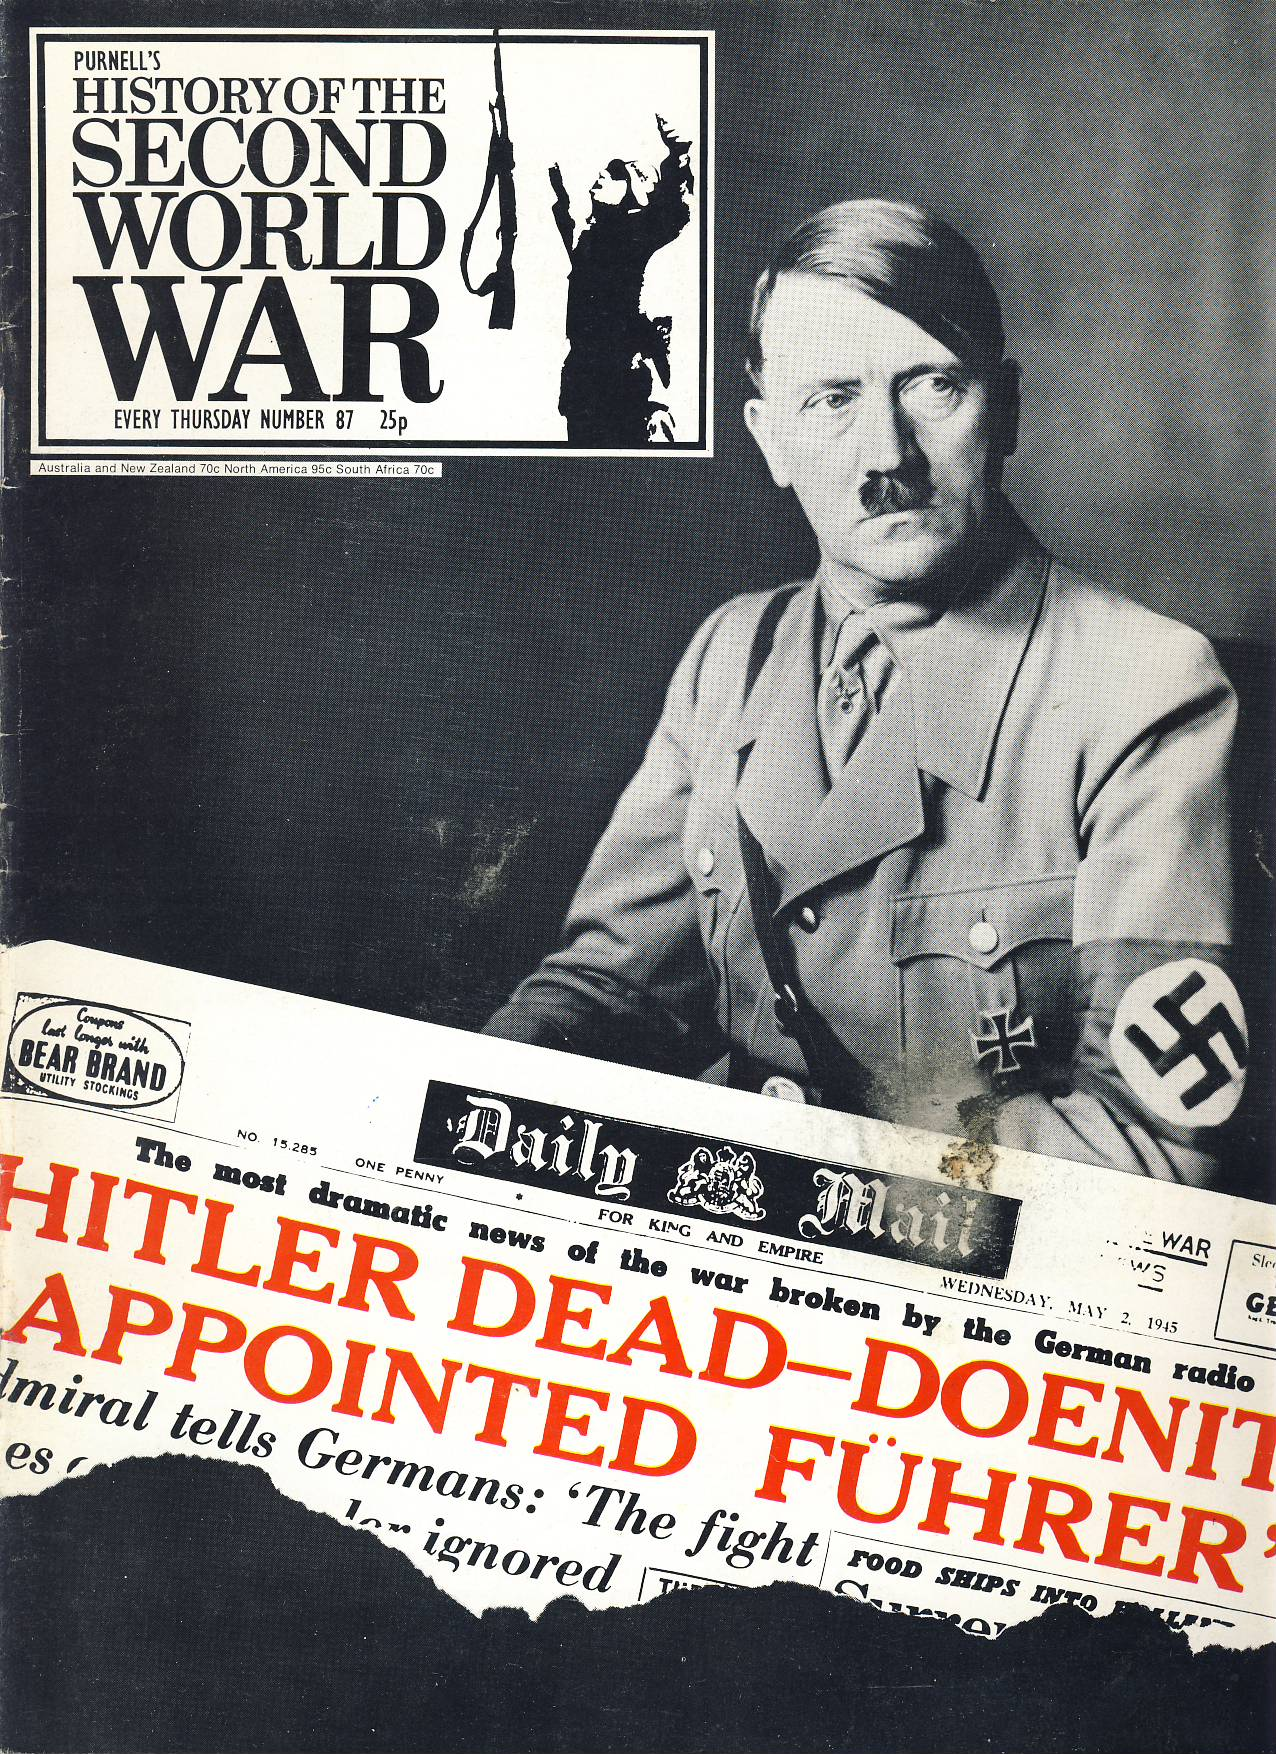 History of the Second World War Magazine #87 HITLER DEAD Prague Rising BERLIN last 5 days A vintage Purnell's weekly magazine in good read condition. Please see larger photo and full description for details.